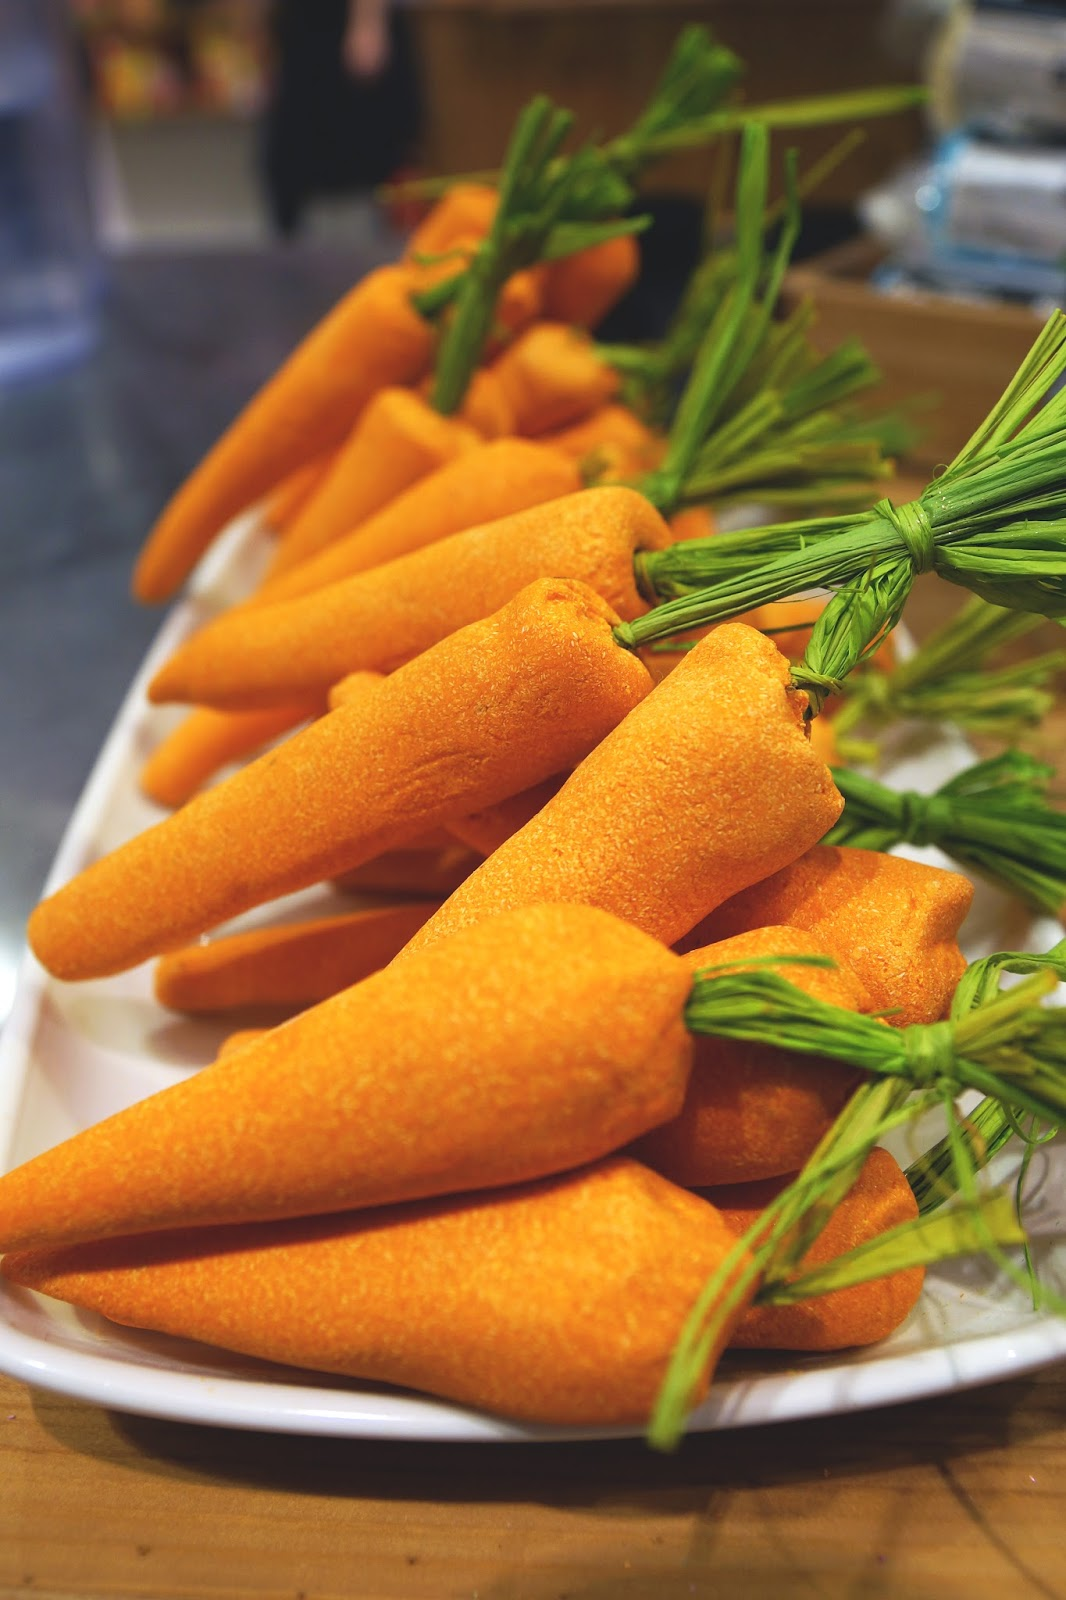 Hello Freckles LUSH Easter 2015 Bunch of Carrots